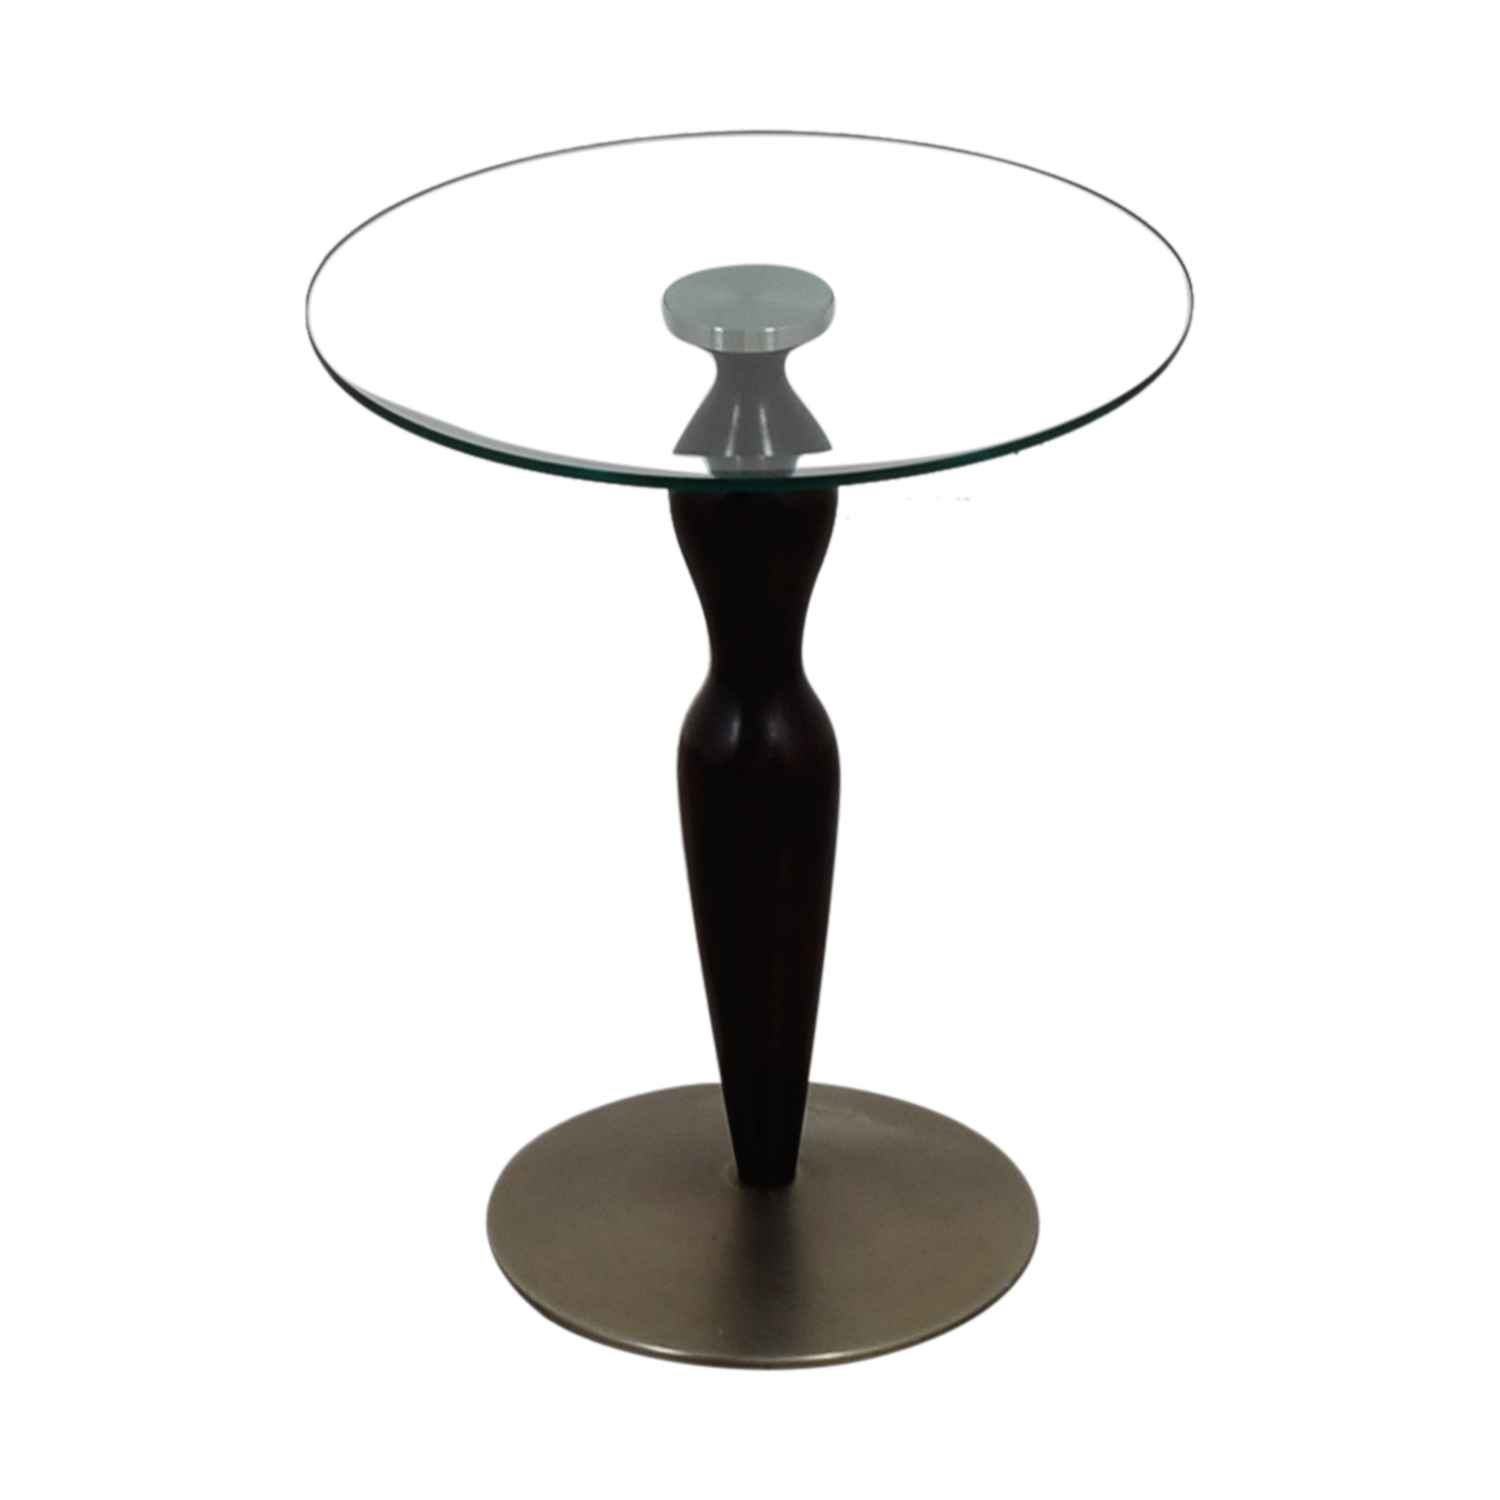 Ethan Allen Ethan Allen Glass Pedestal Table price